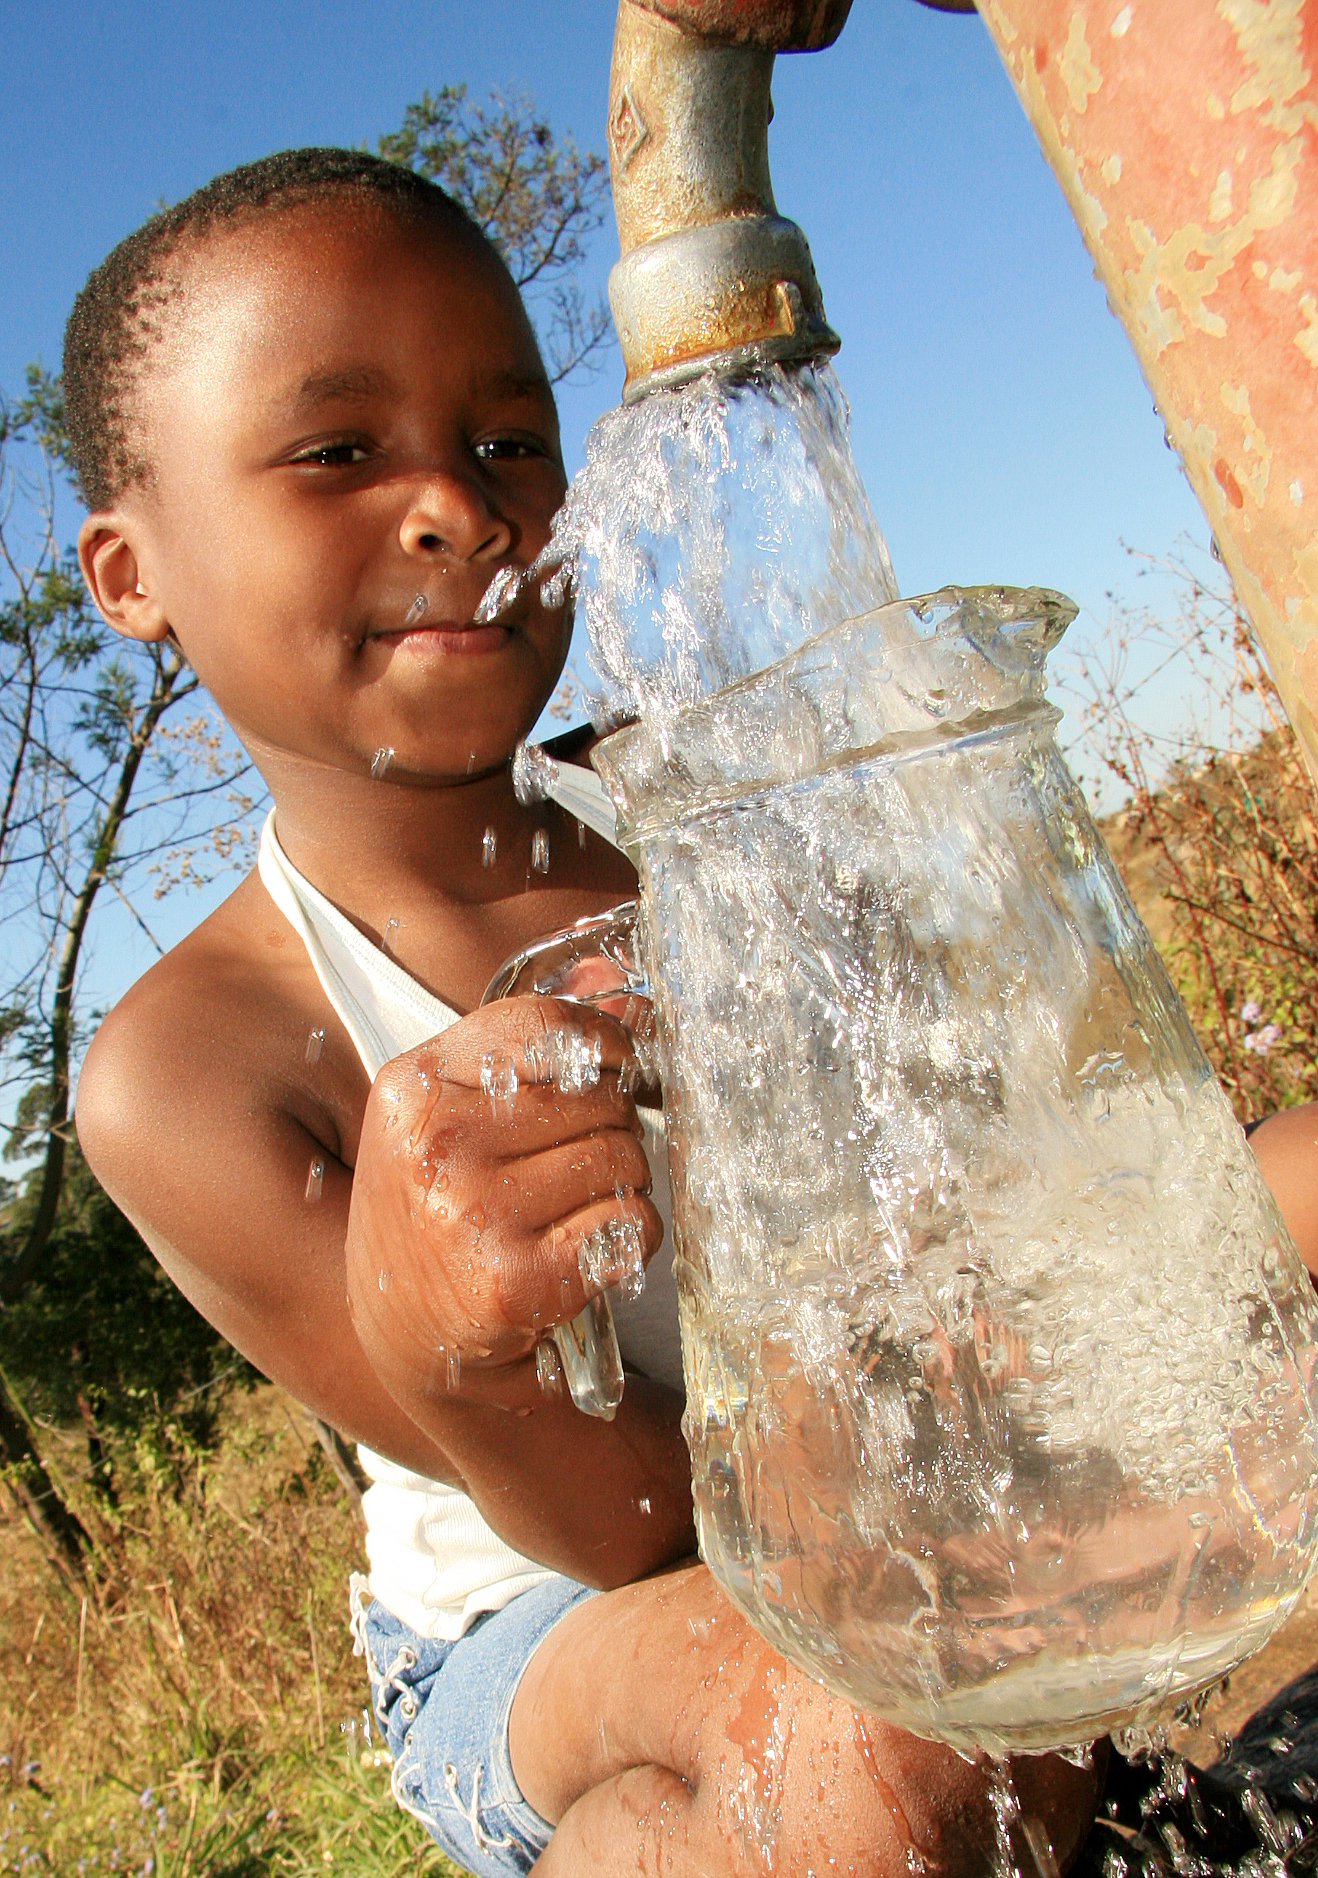 South Africa's water policy prioritizes domestic consumers.